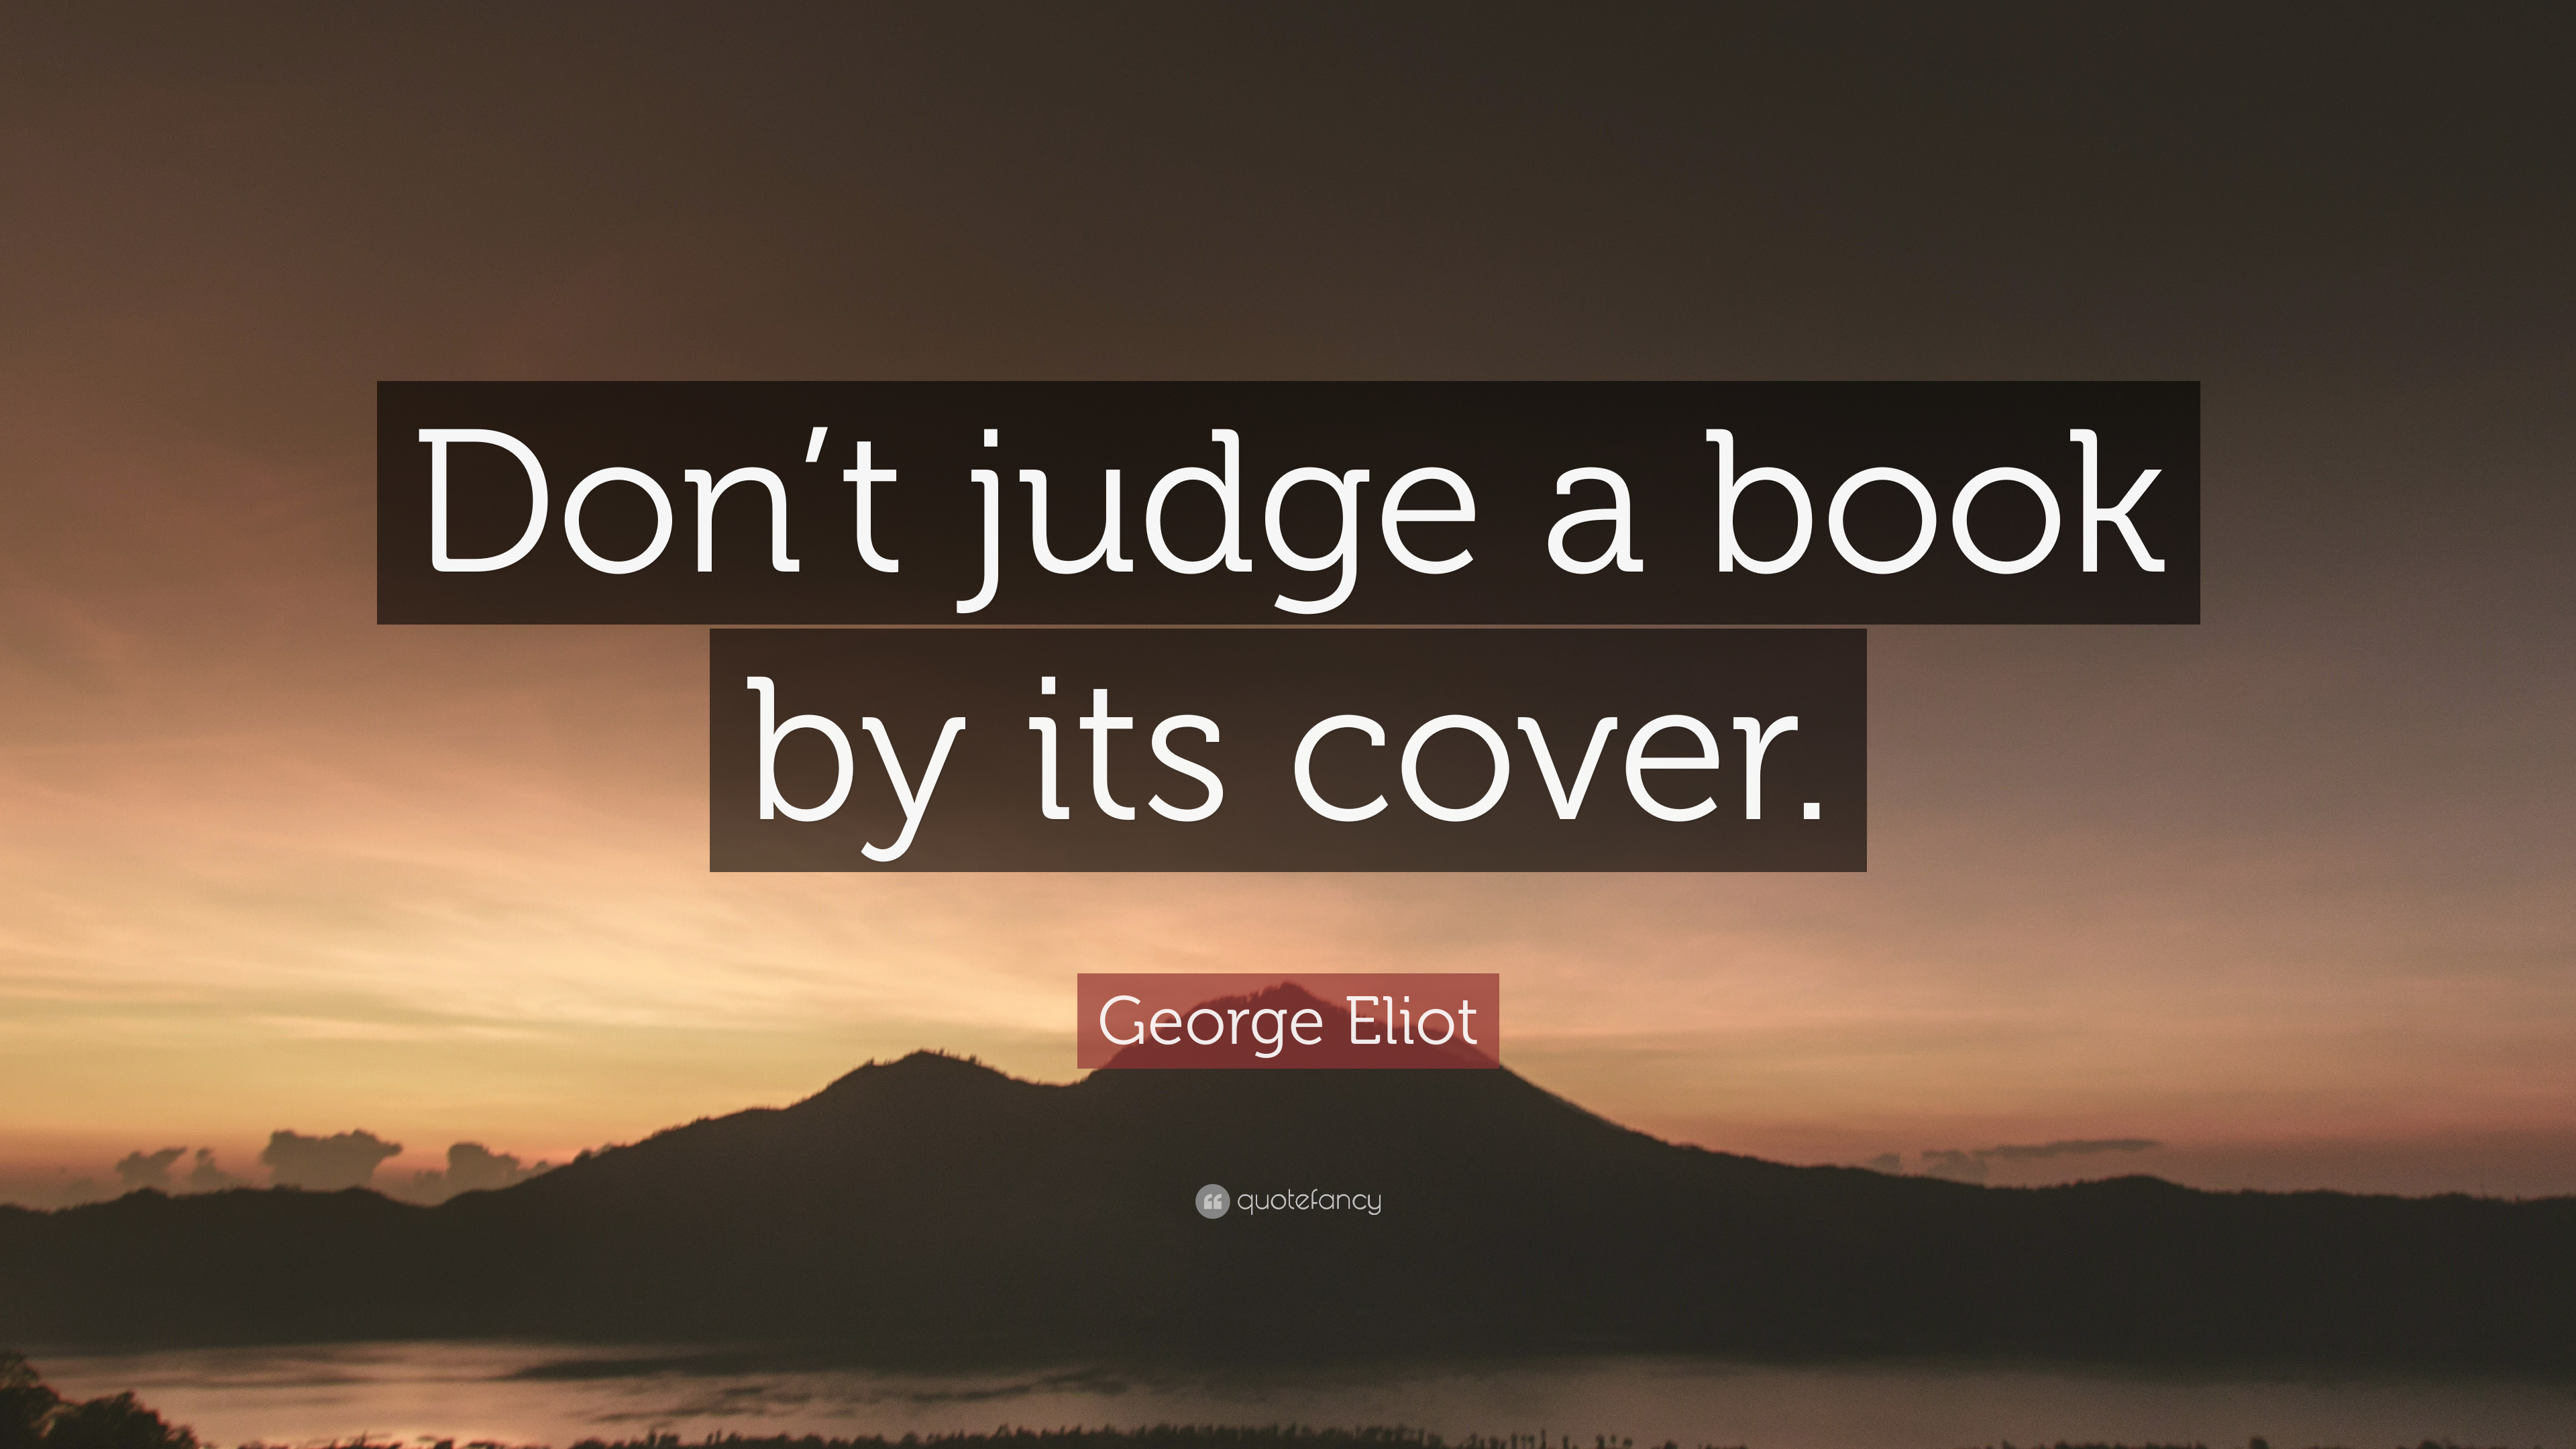 George Eliot Quote: Dont judge a book by its cover.